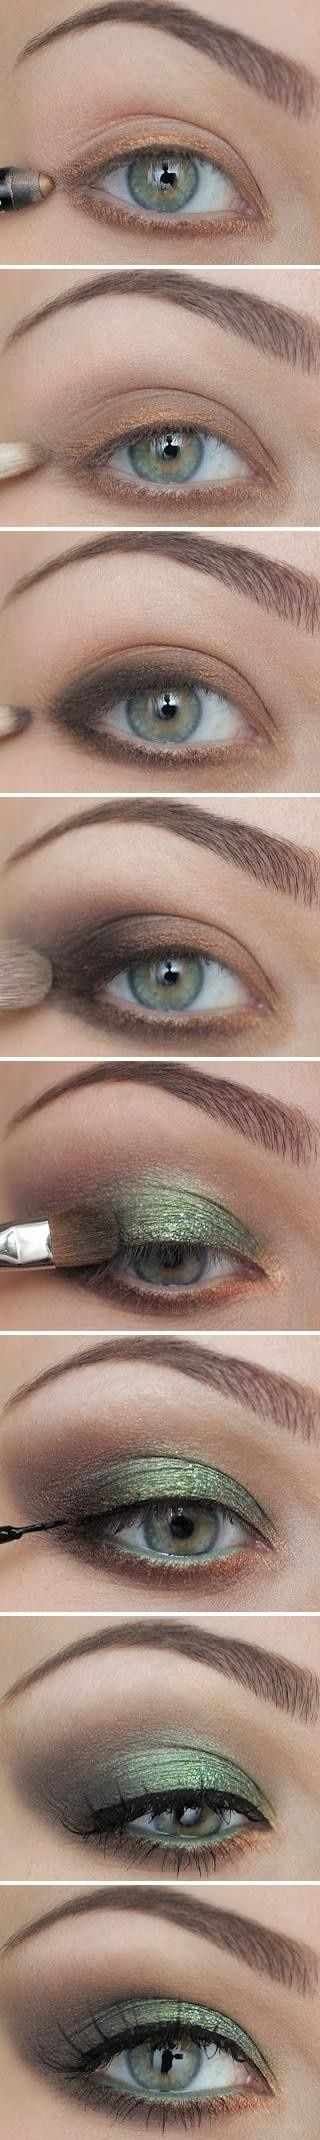 Green and Brown - gorgeous @Brittany Horton Horton Light.  I would like you guys to do this to me when you do my makeup!